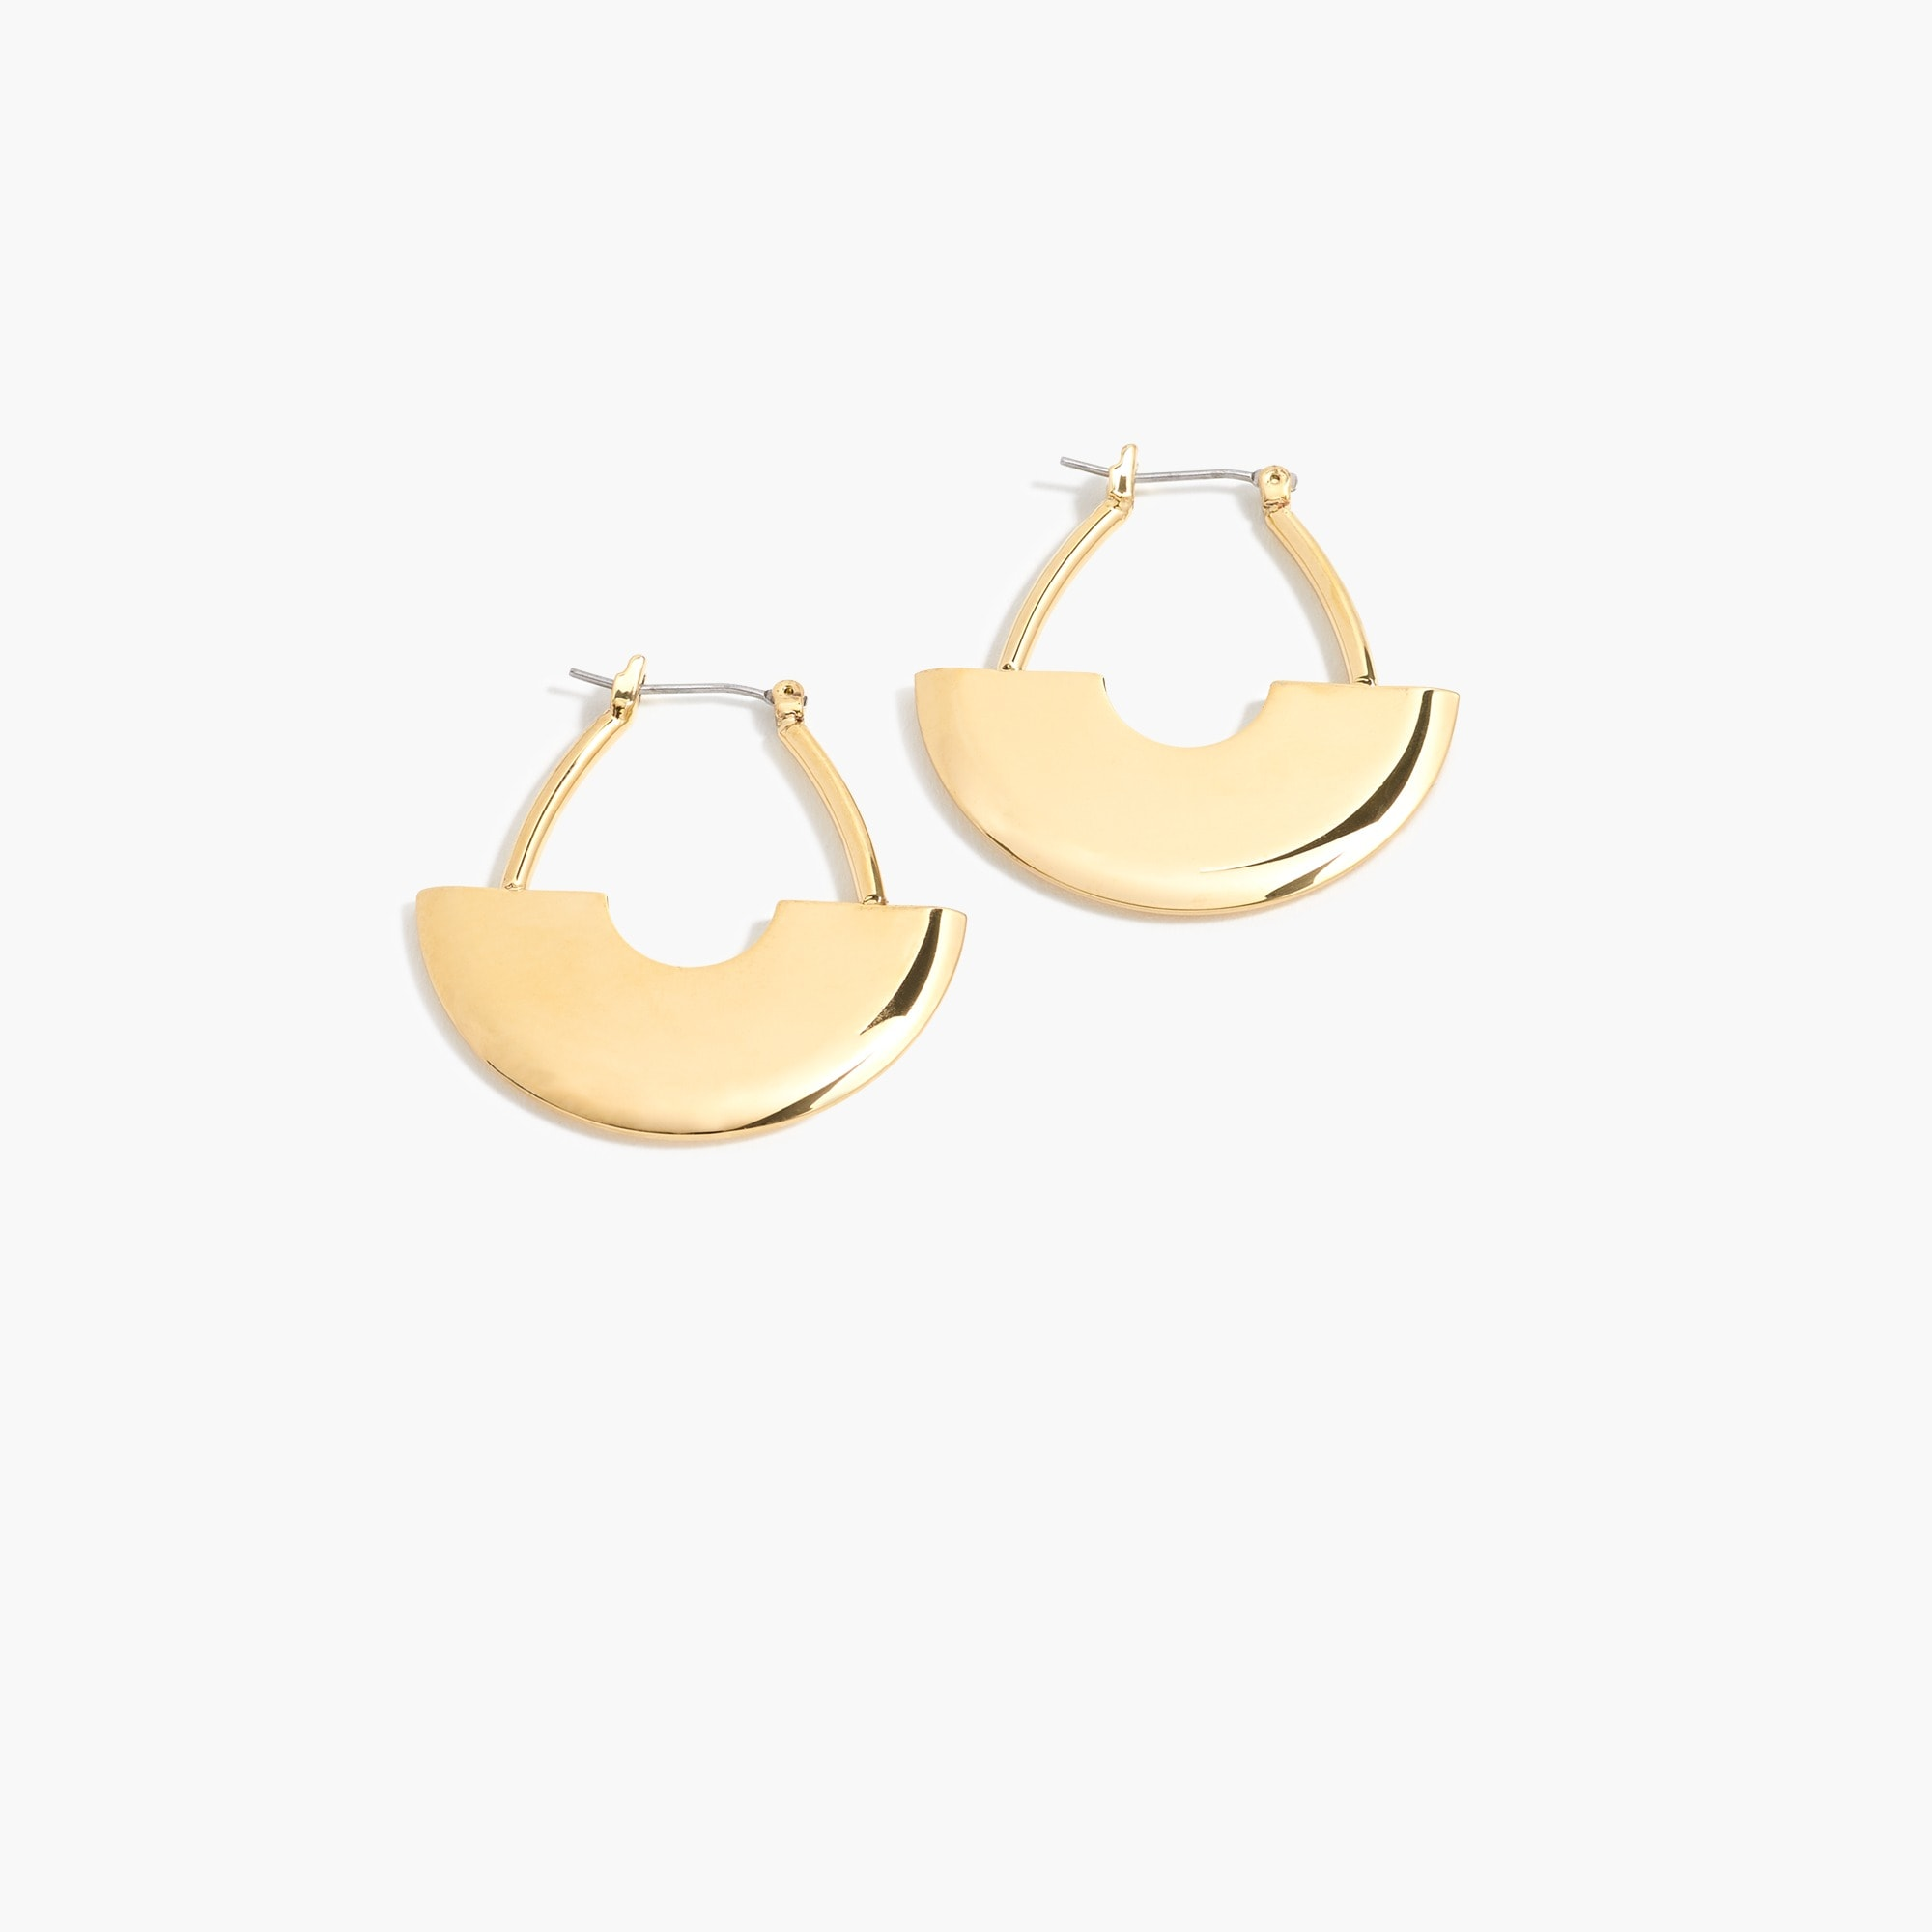 Image 1 for Gold art deco hoop earrings